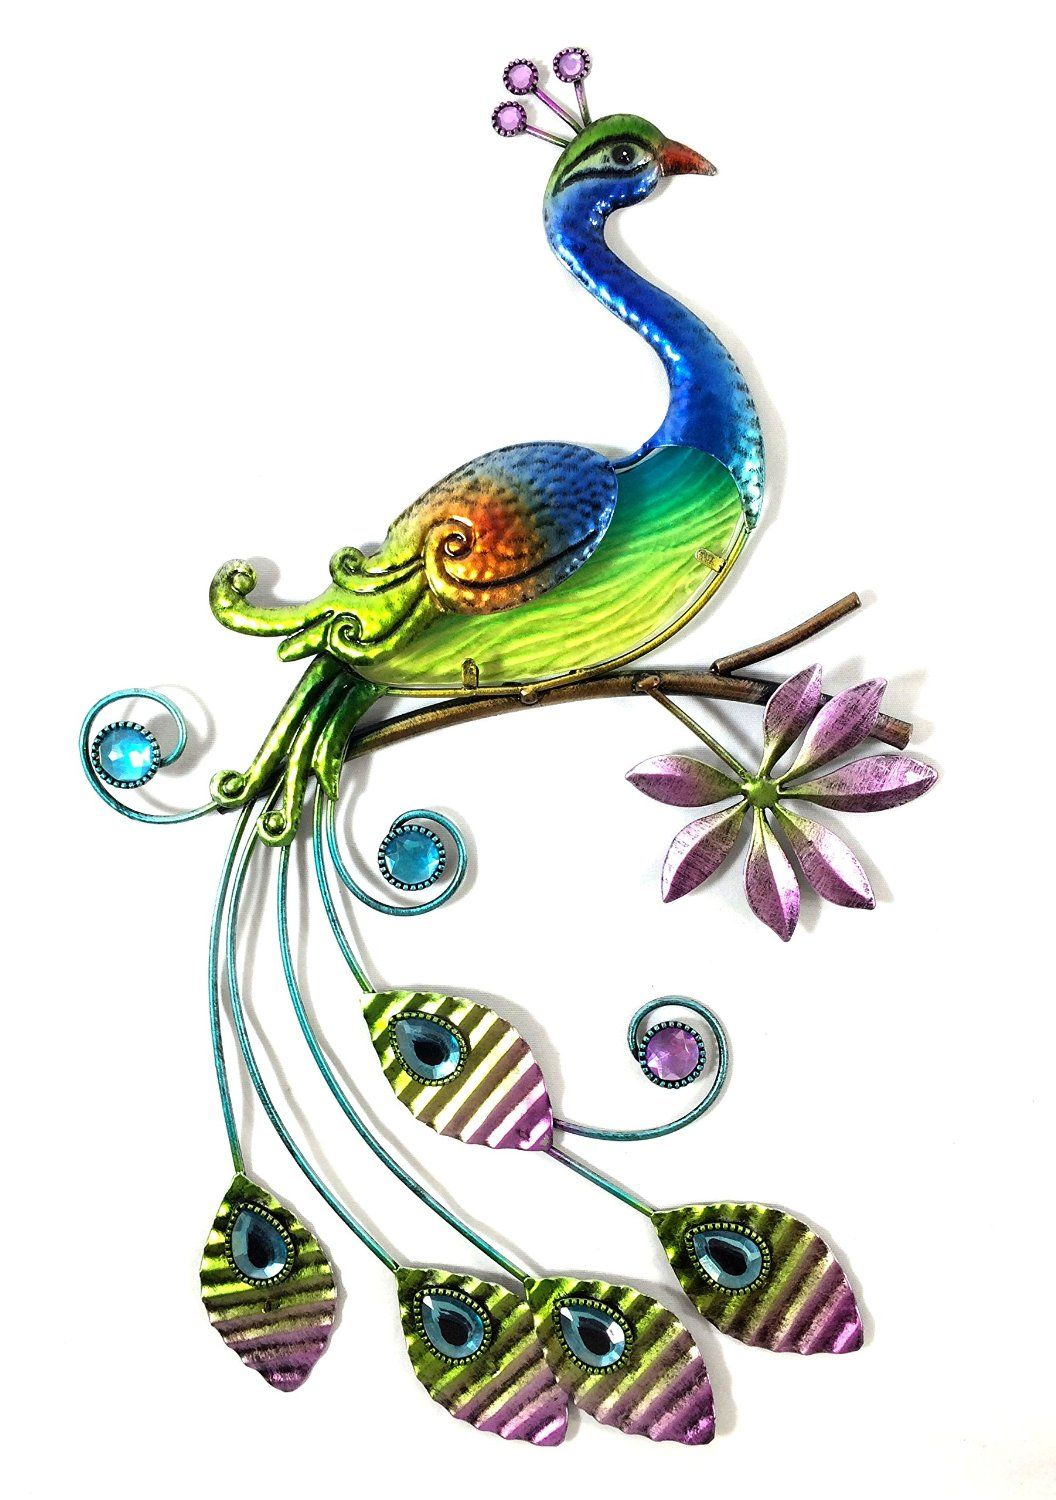 Bejeweled Display® Peacock w/ Glass Wall Art Plaque and Home Decor ...